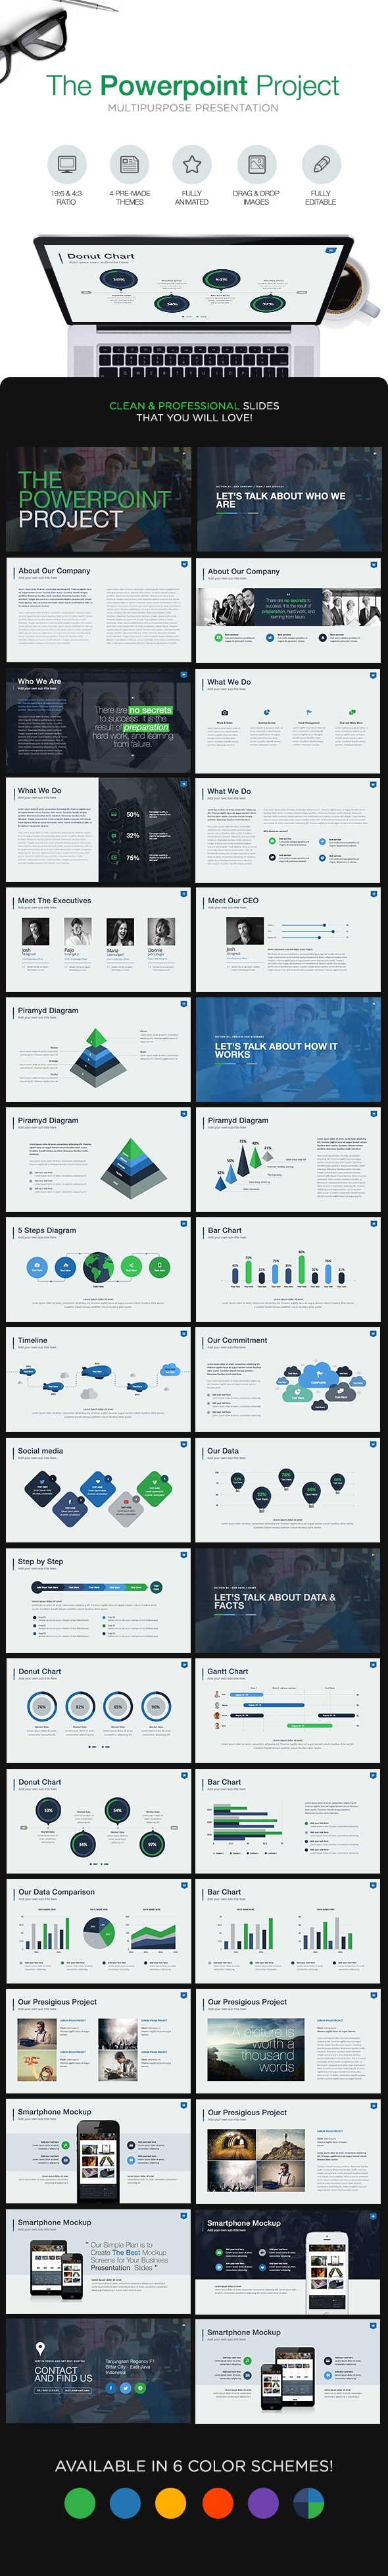 GraphicRiver The Powerpoint Project Powerpoint Template 8896235